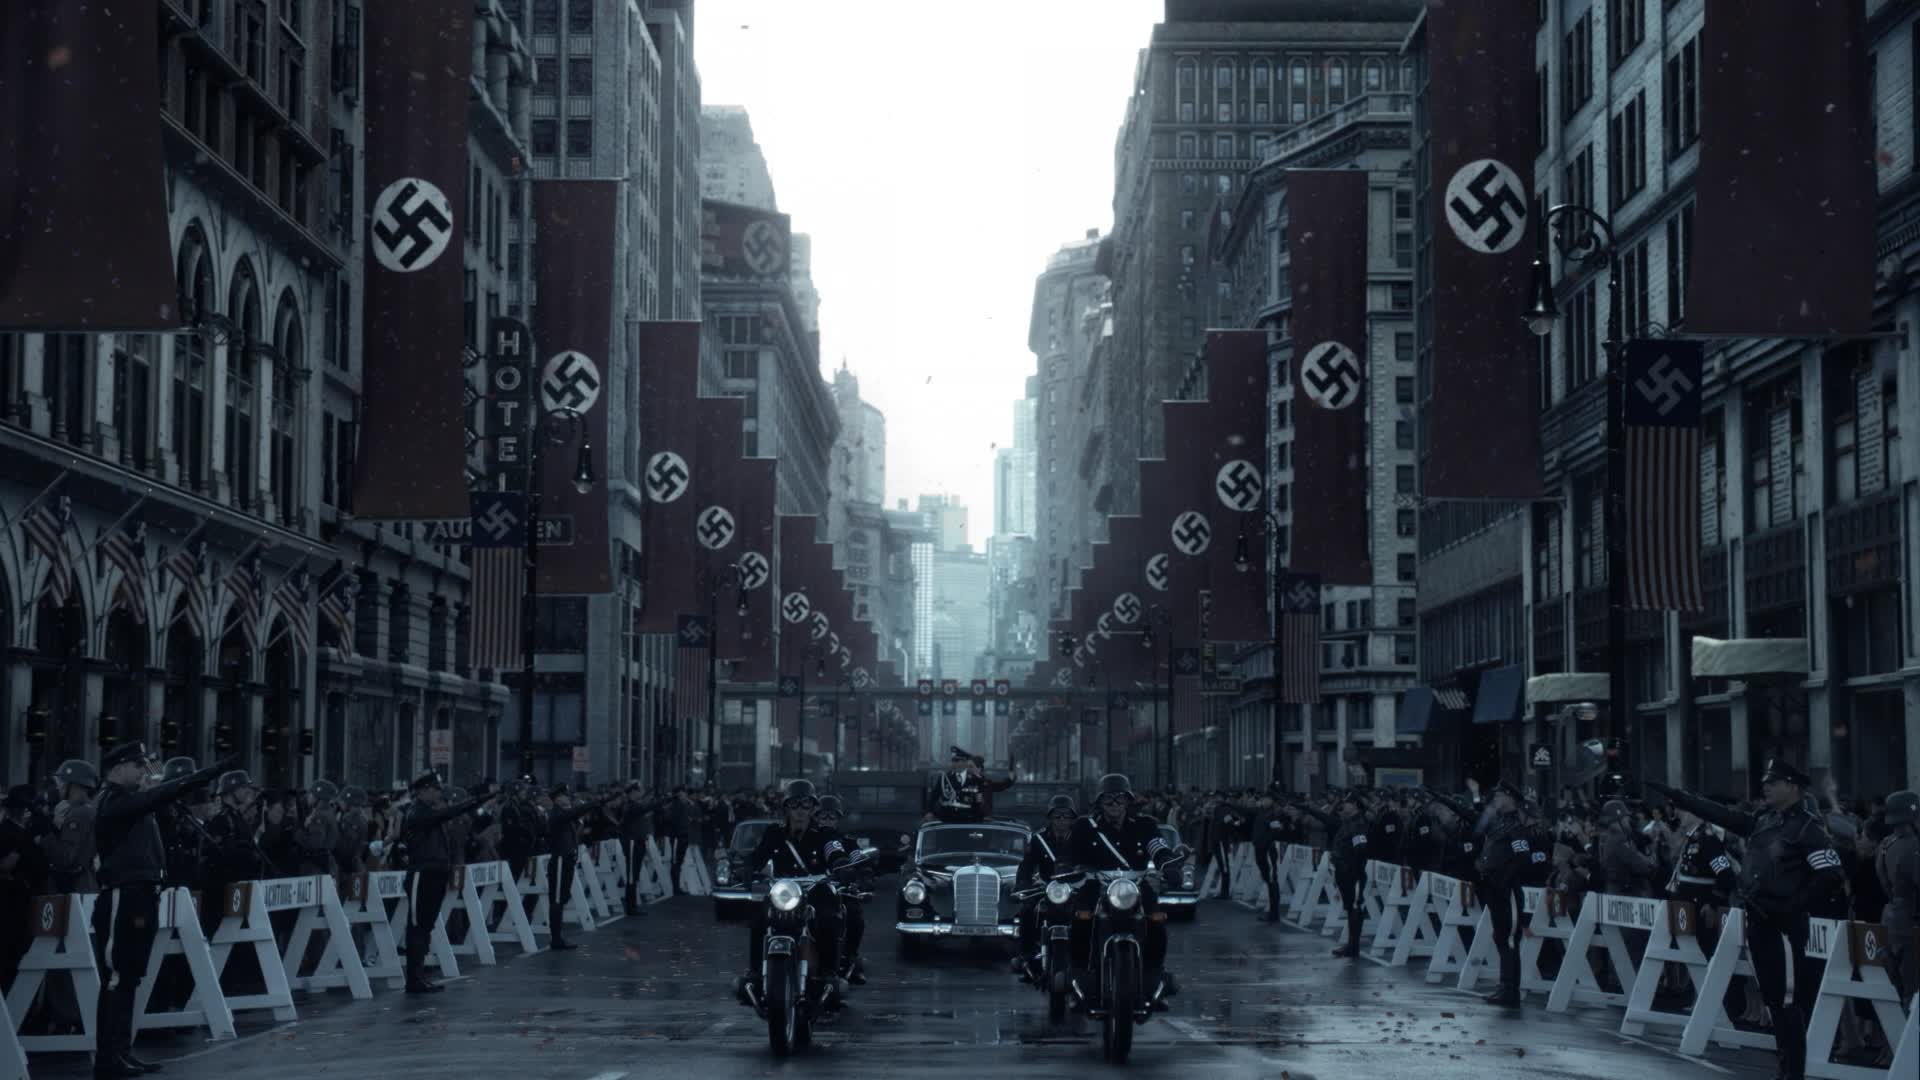 a Nazi Parade in Man in the High Castle